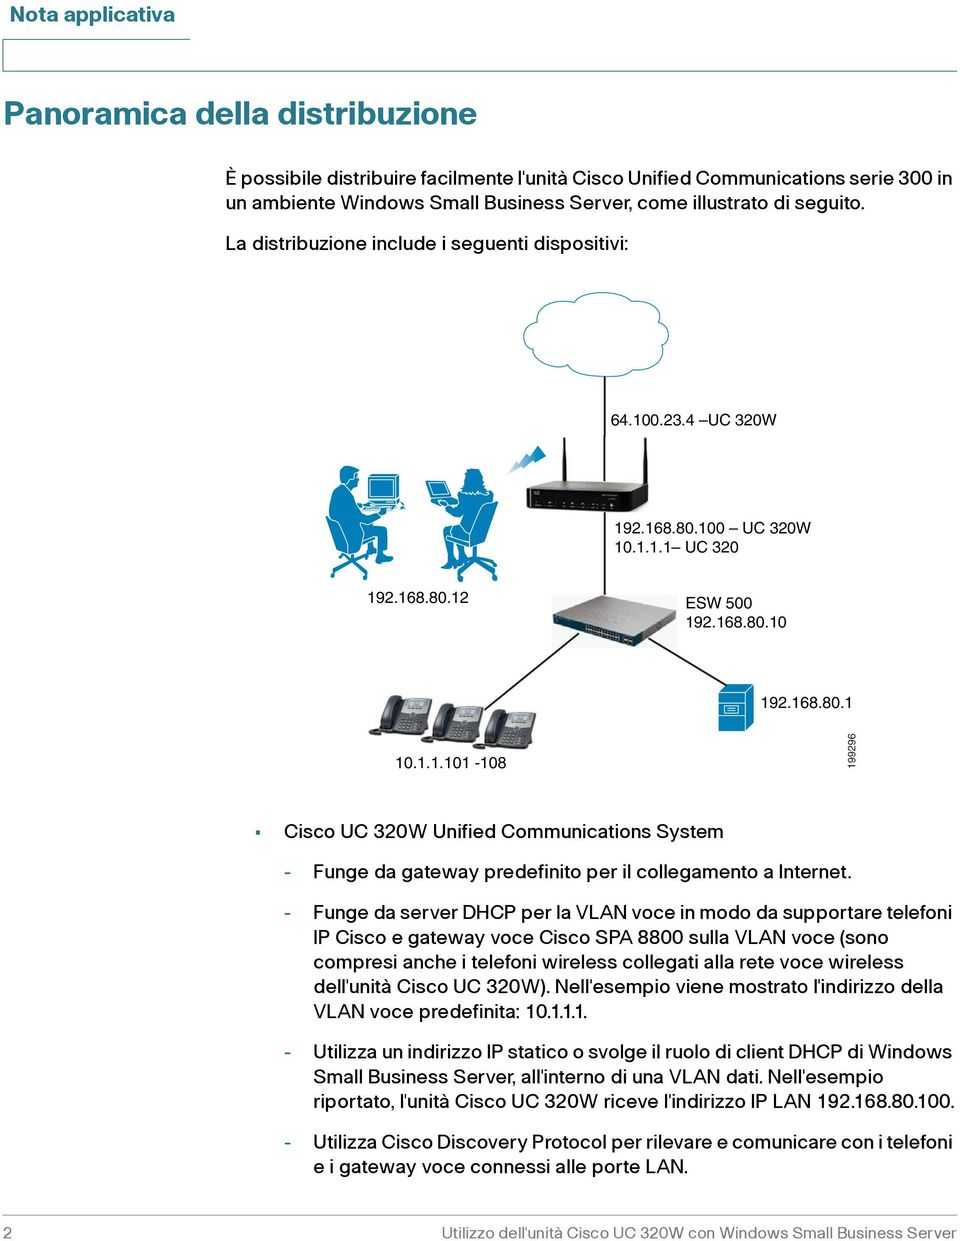 - Funge da server DHCP per la VLAN voce in modo da supportare telefoni IP Cisco e gateway voce Cisco SPA 8800 sulla VLAN voce (sono compresi anche i telefoni wireless collegati alla rete voce